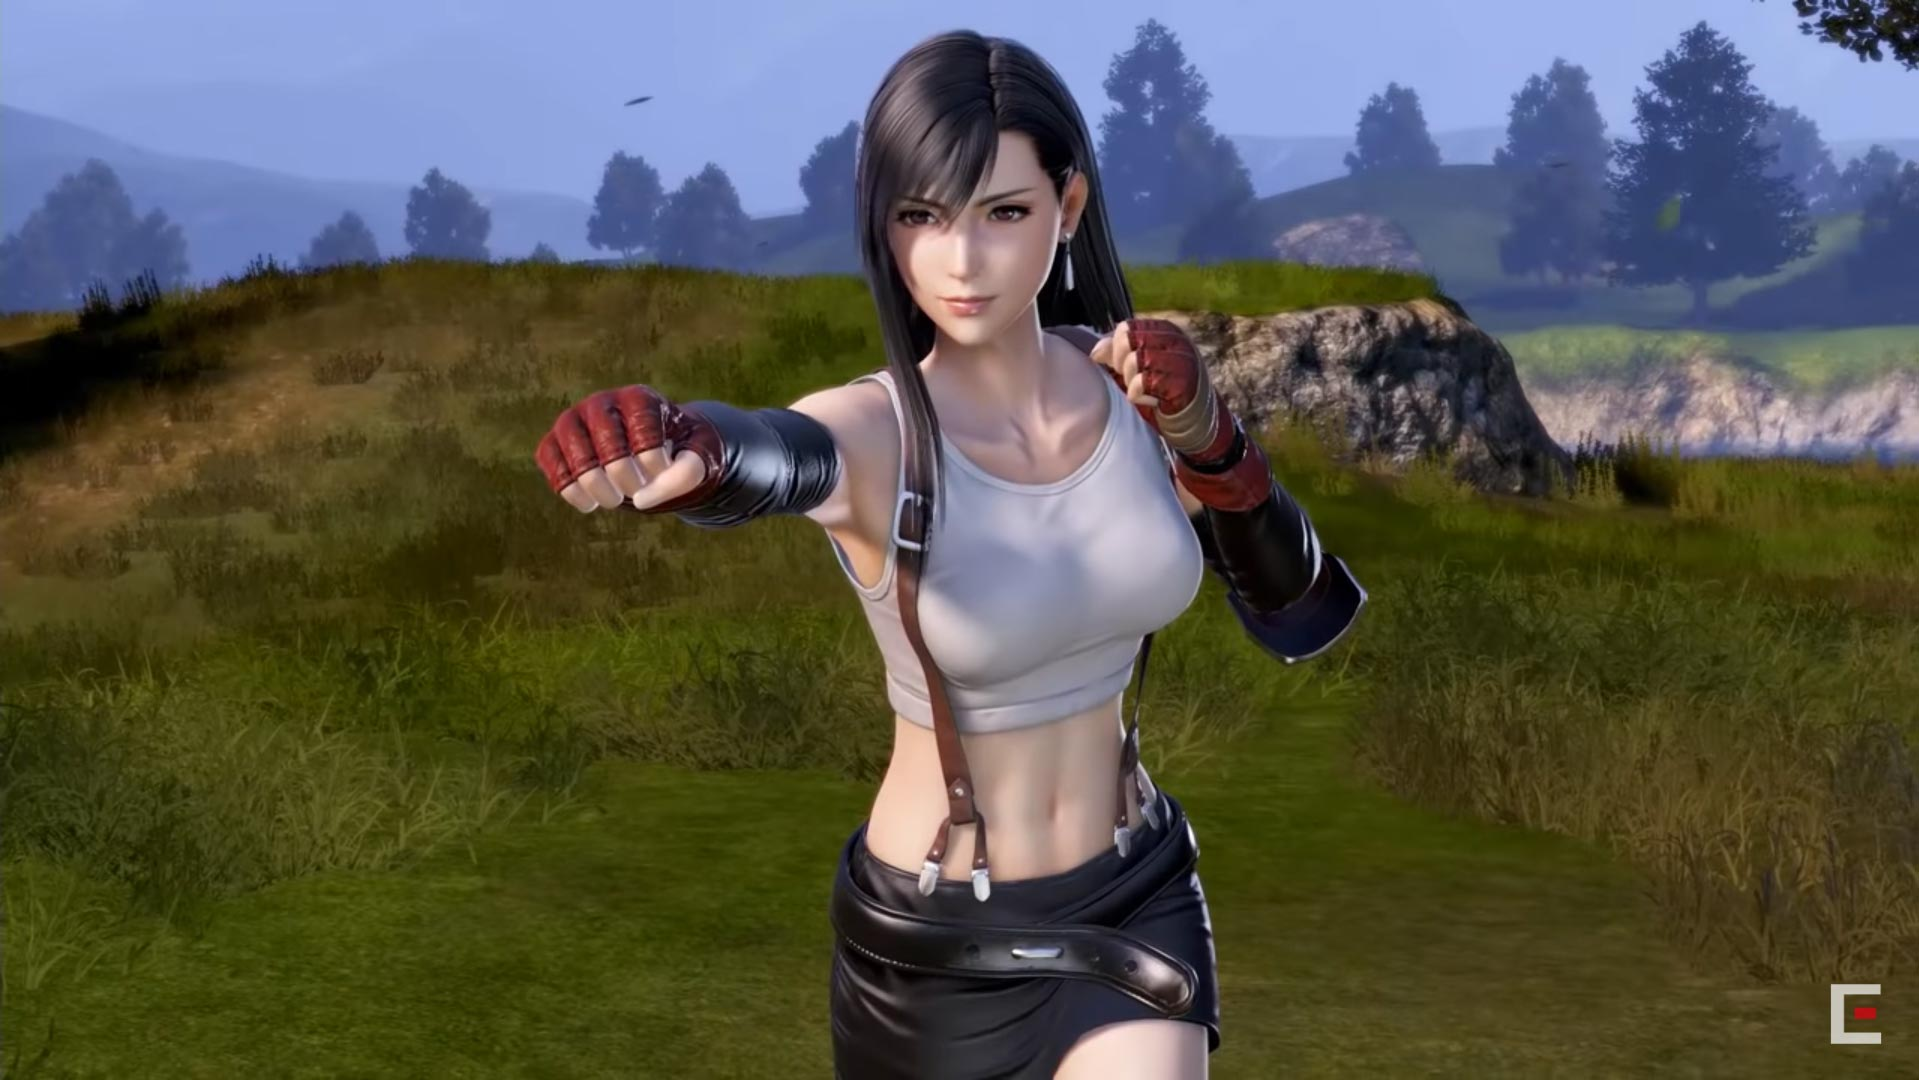 Tifa Dissidia 4 out of 6 image gallery